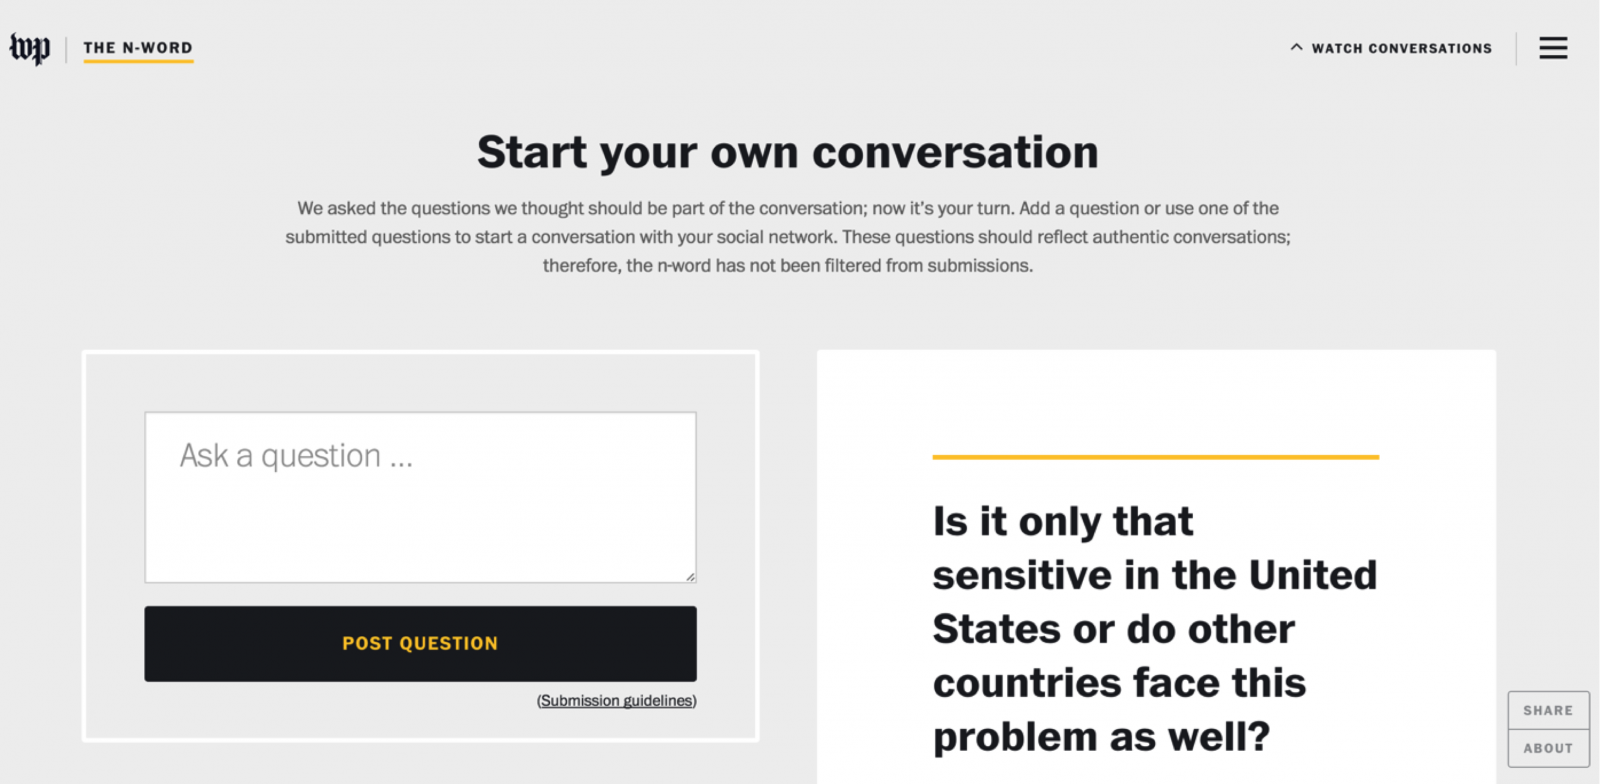 Washington Post uses a start your own conversation feature.